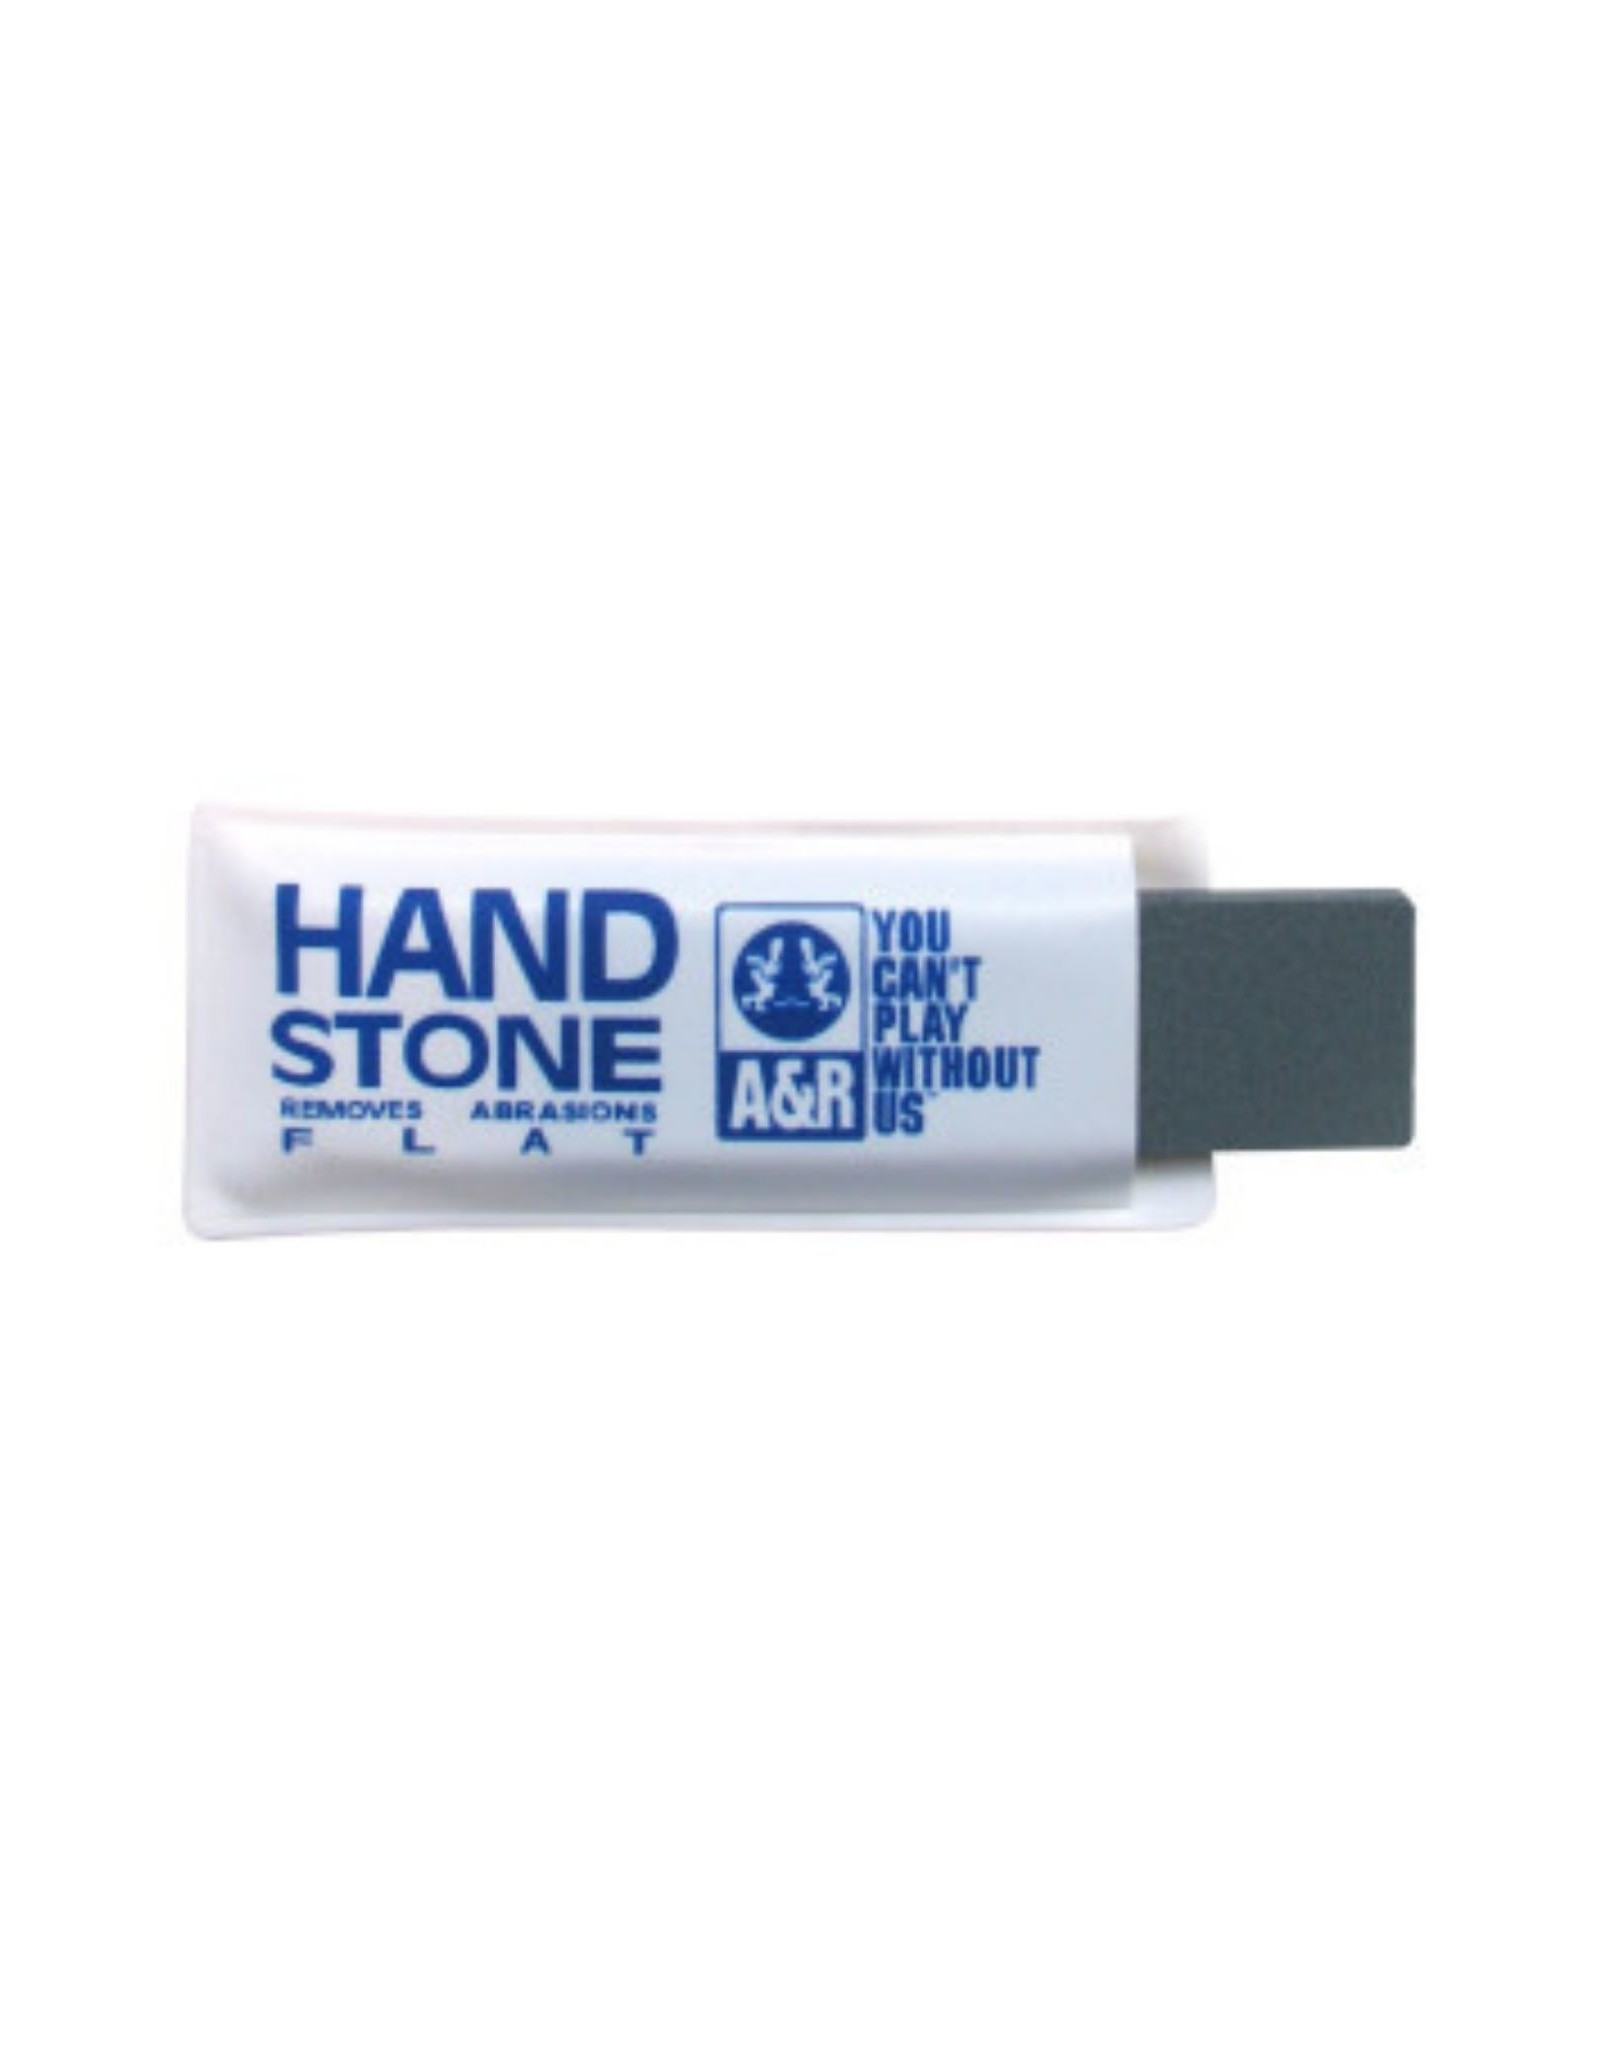 A&R Hand Stone Rectangular in Pouch & Retail Bag